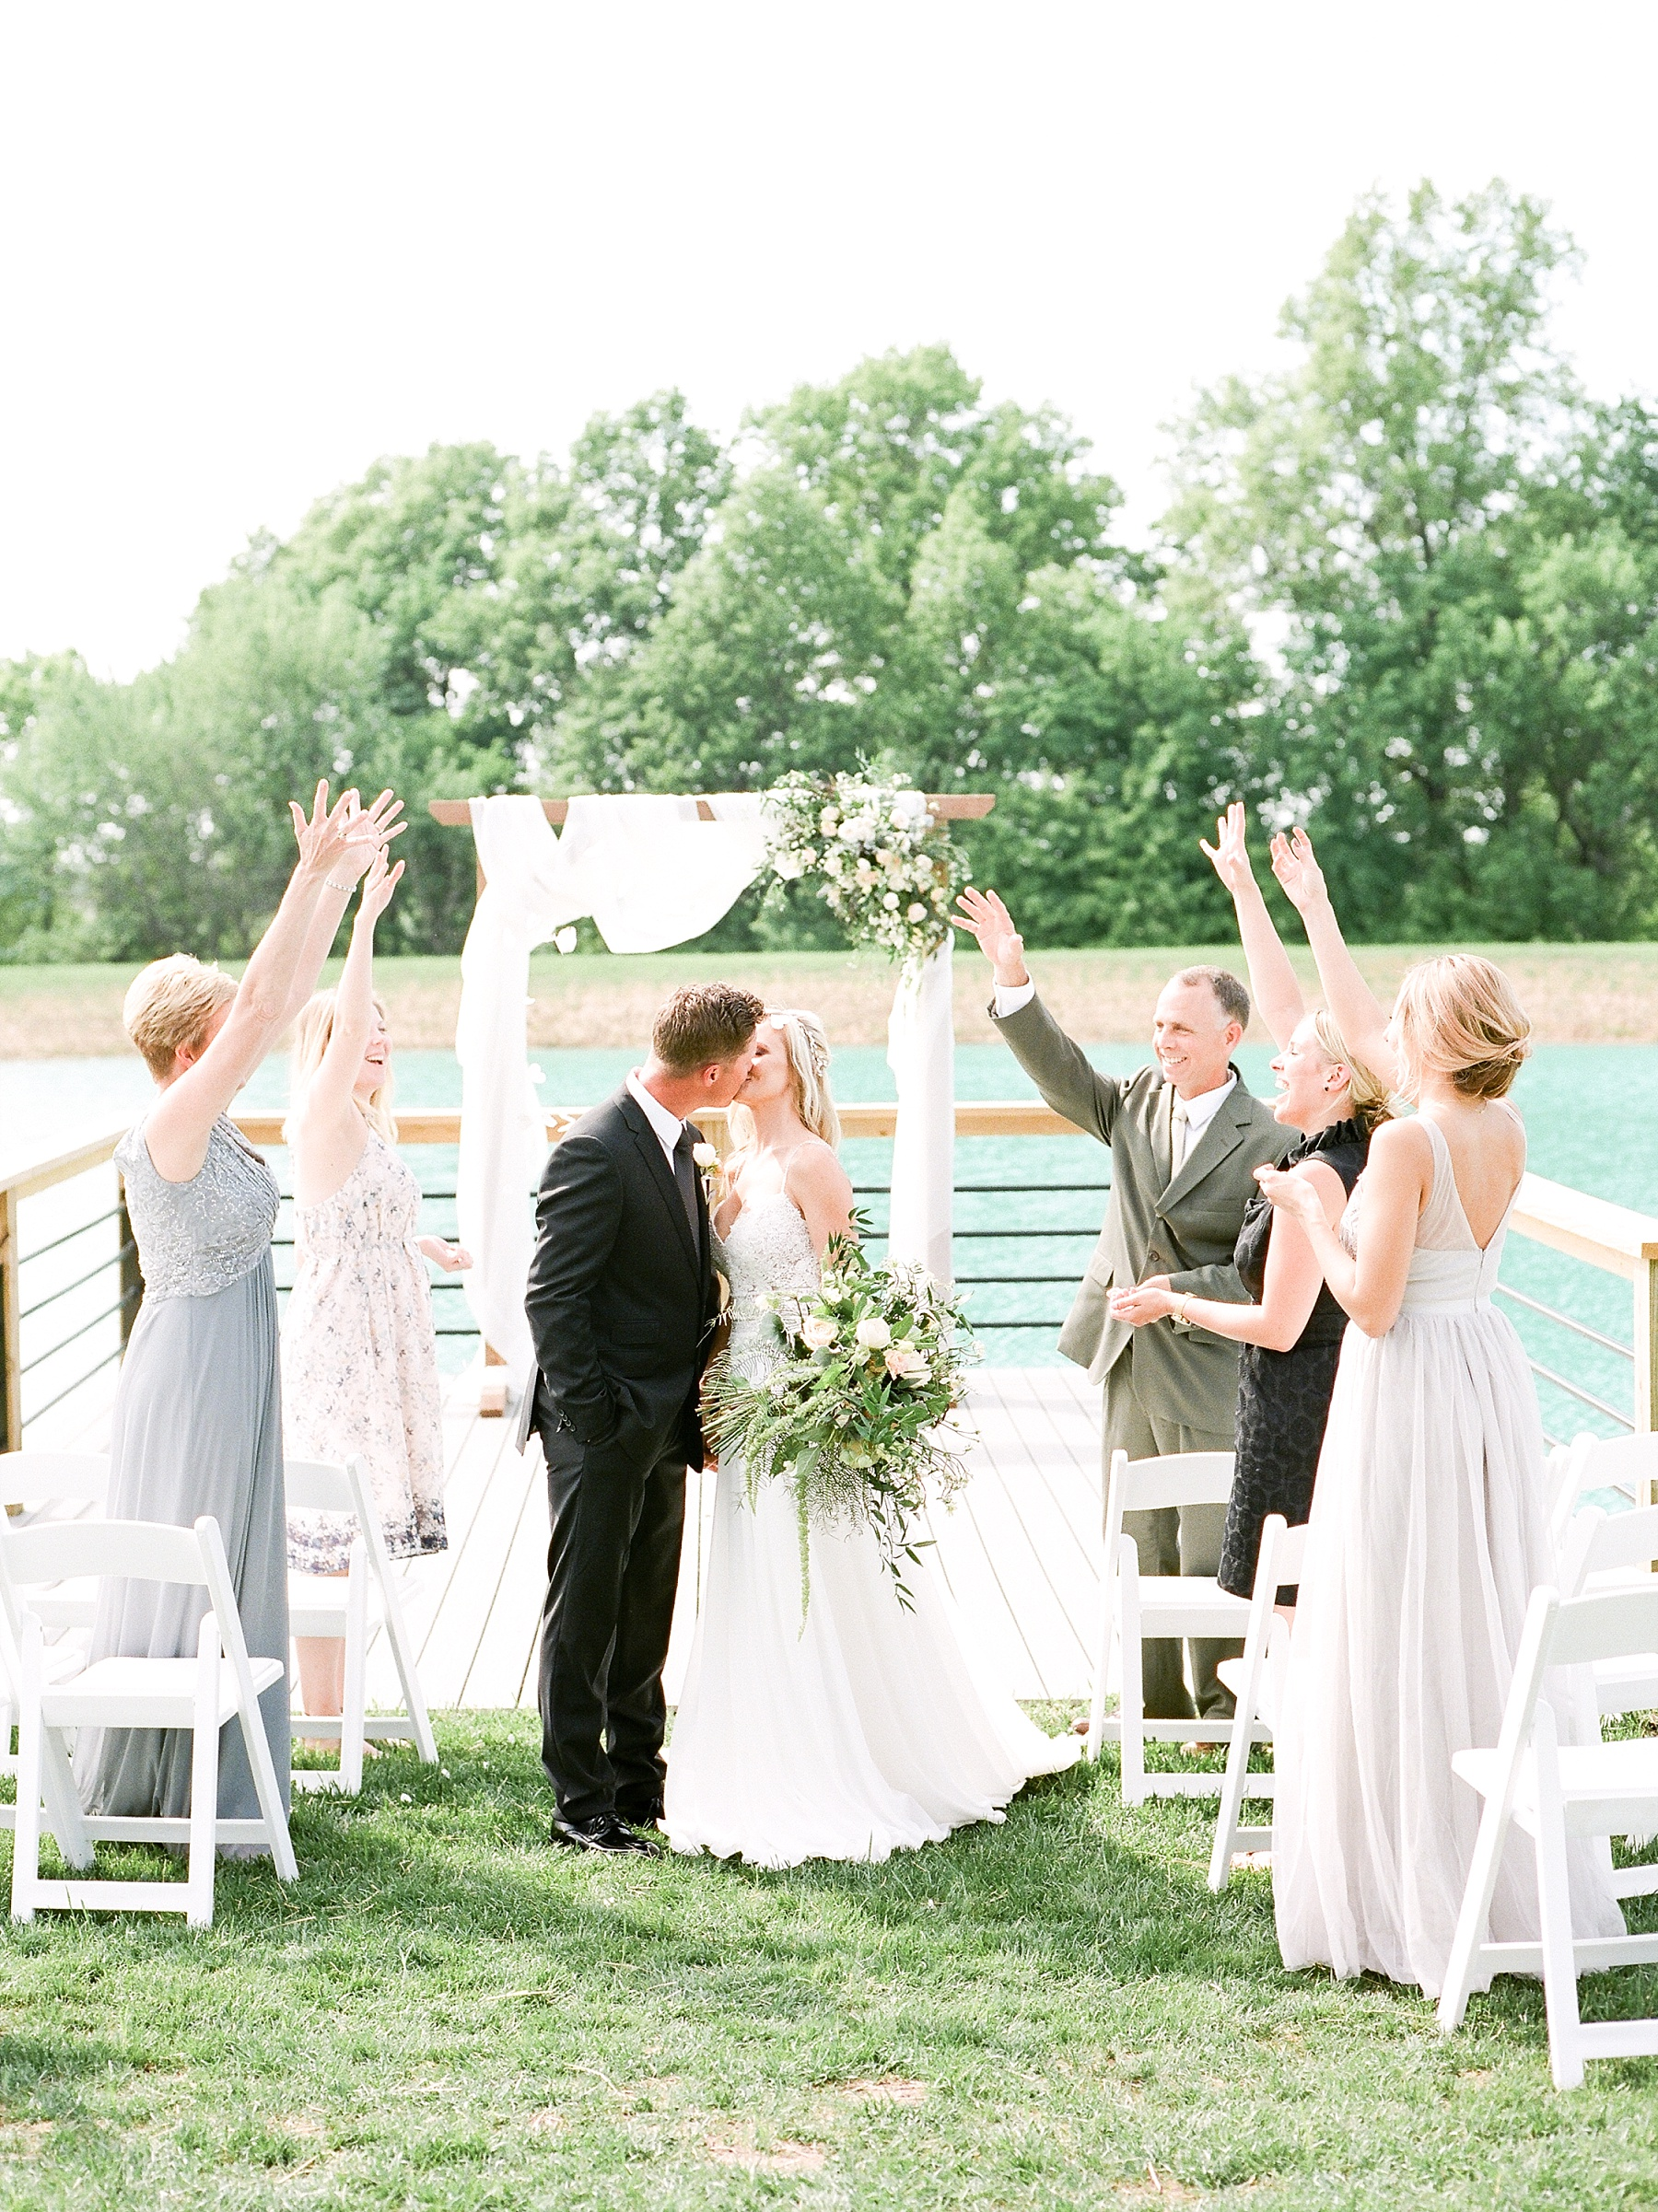 Textural Organic Wedding in All White Venue by Kelsi Kliethermes Wedding Photographer - Missouri, Midwest, and Destinations_0074.jpg